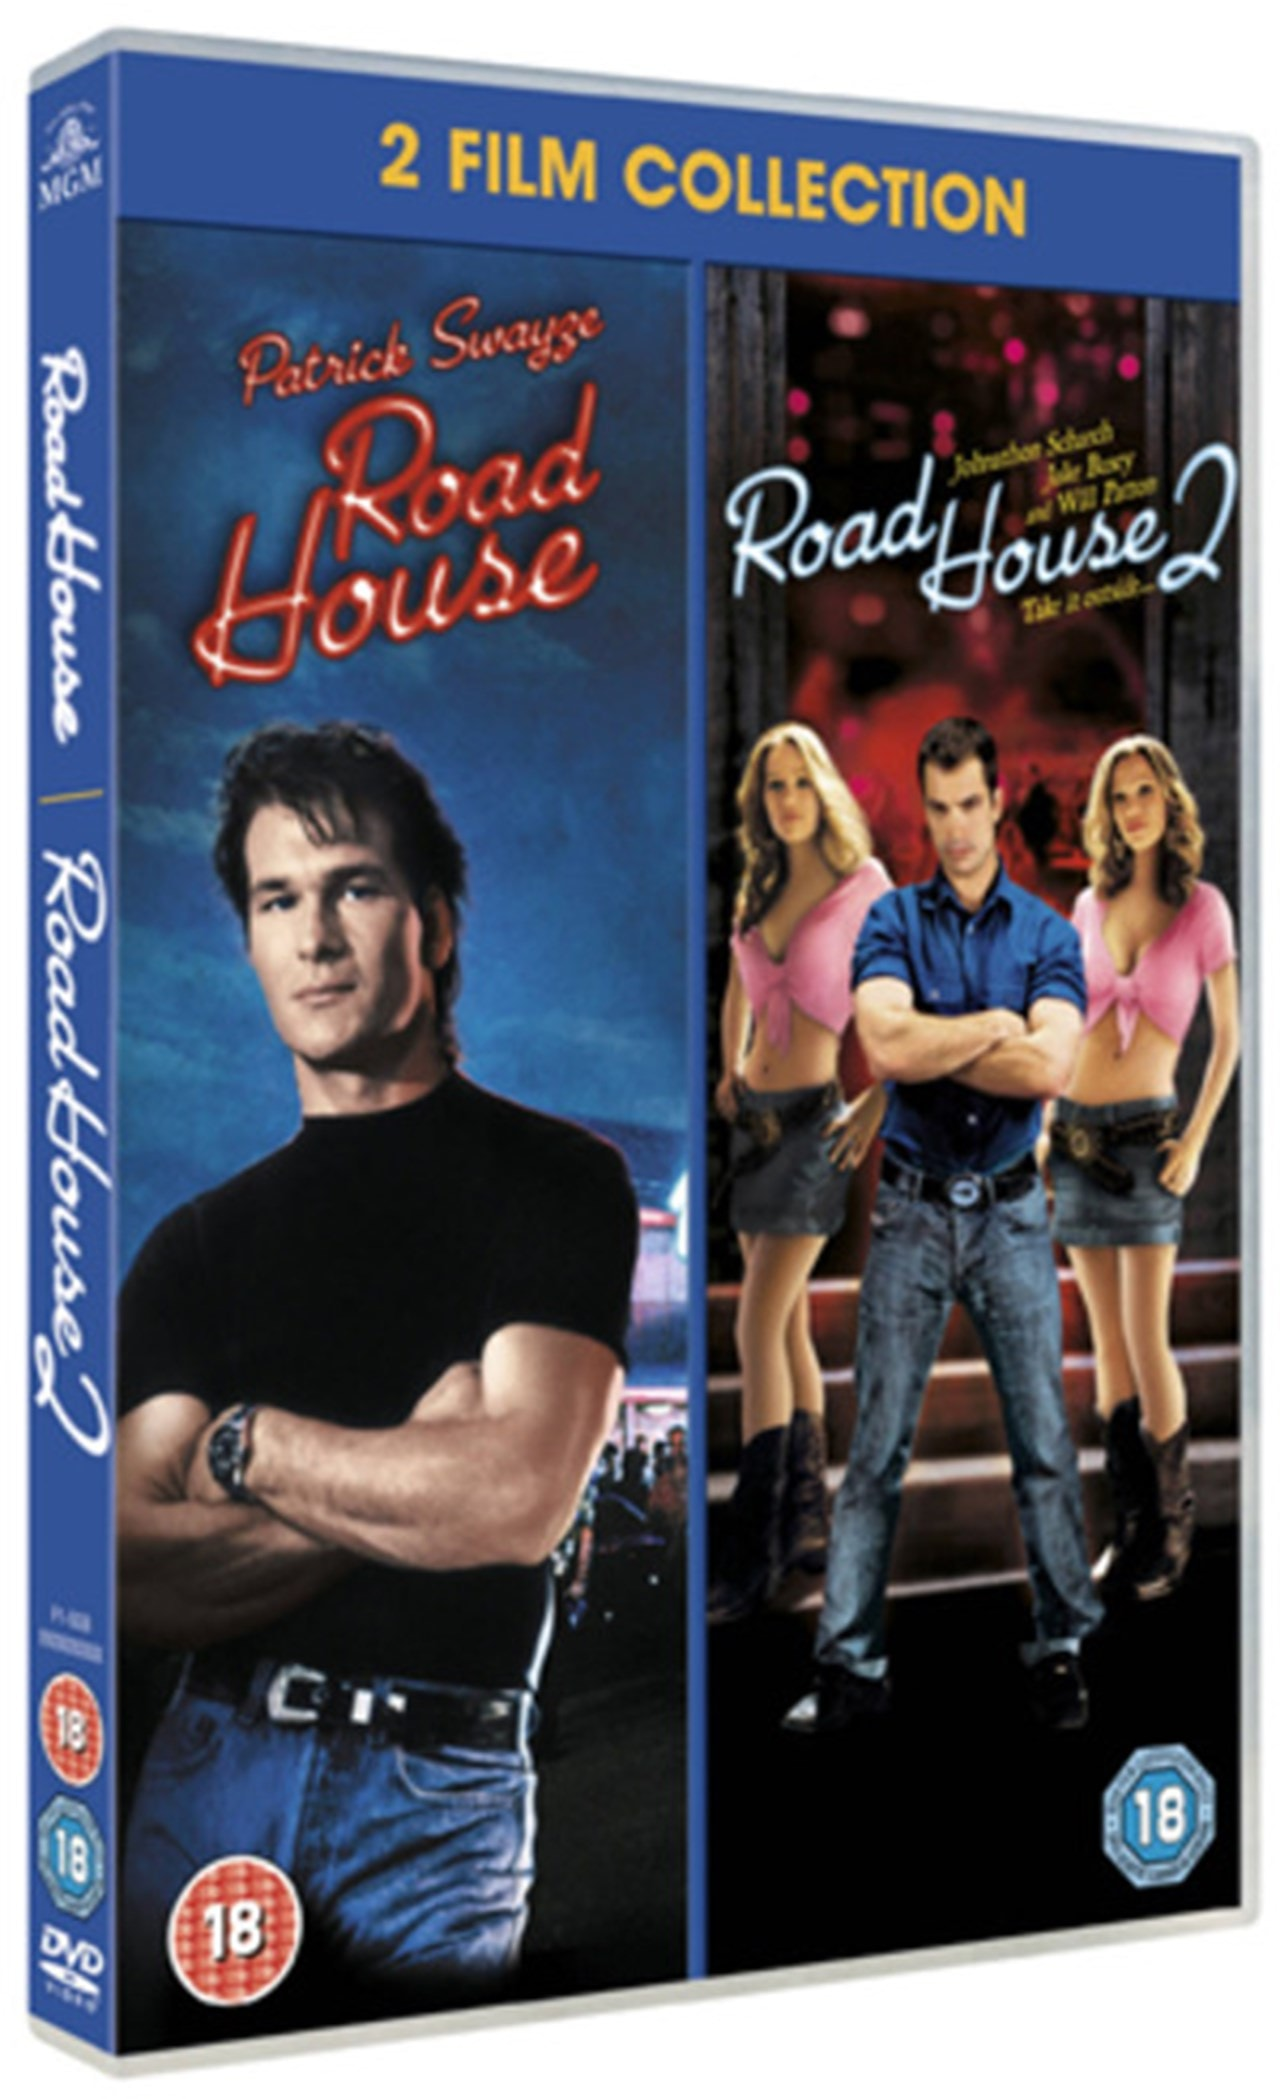 Road House/Road House 2 - Last Call - 1